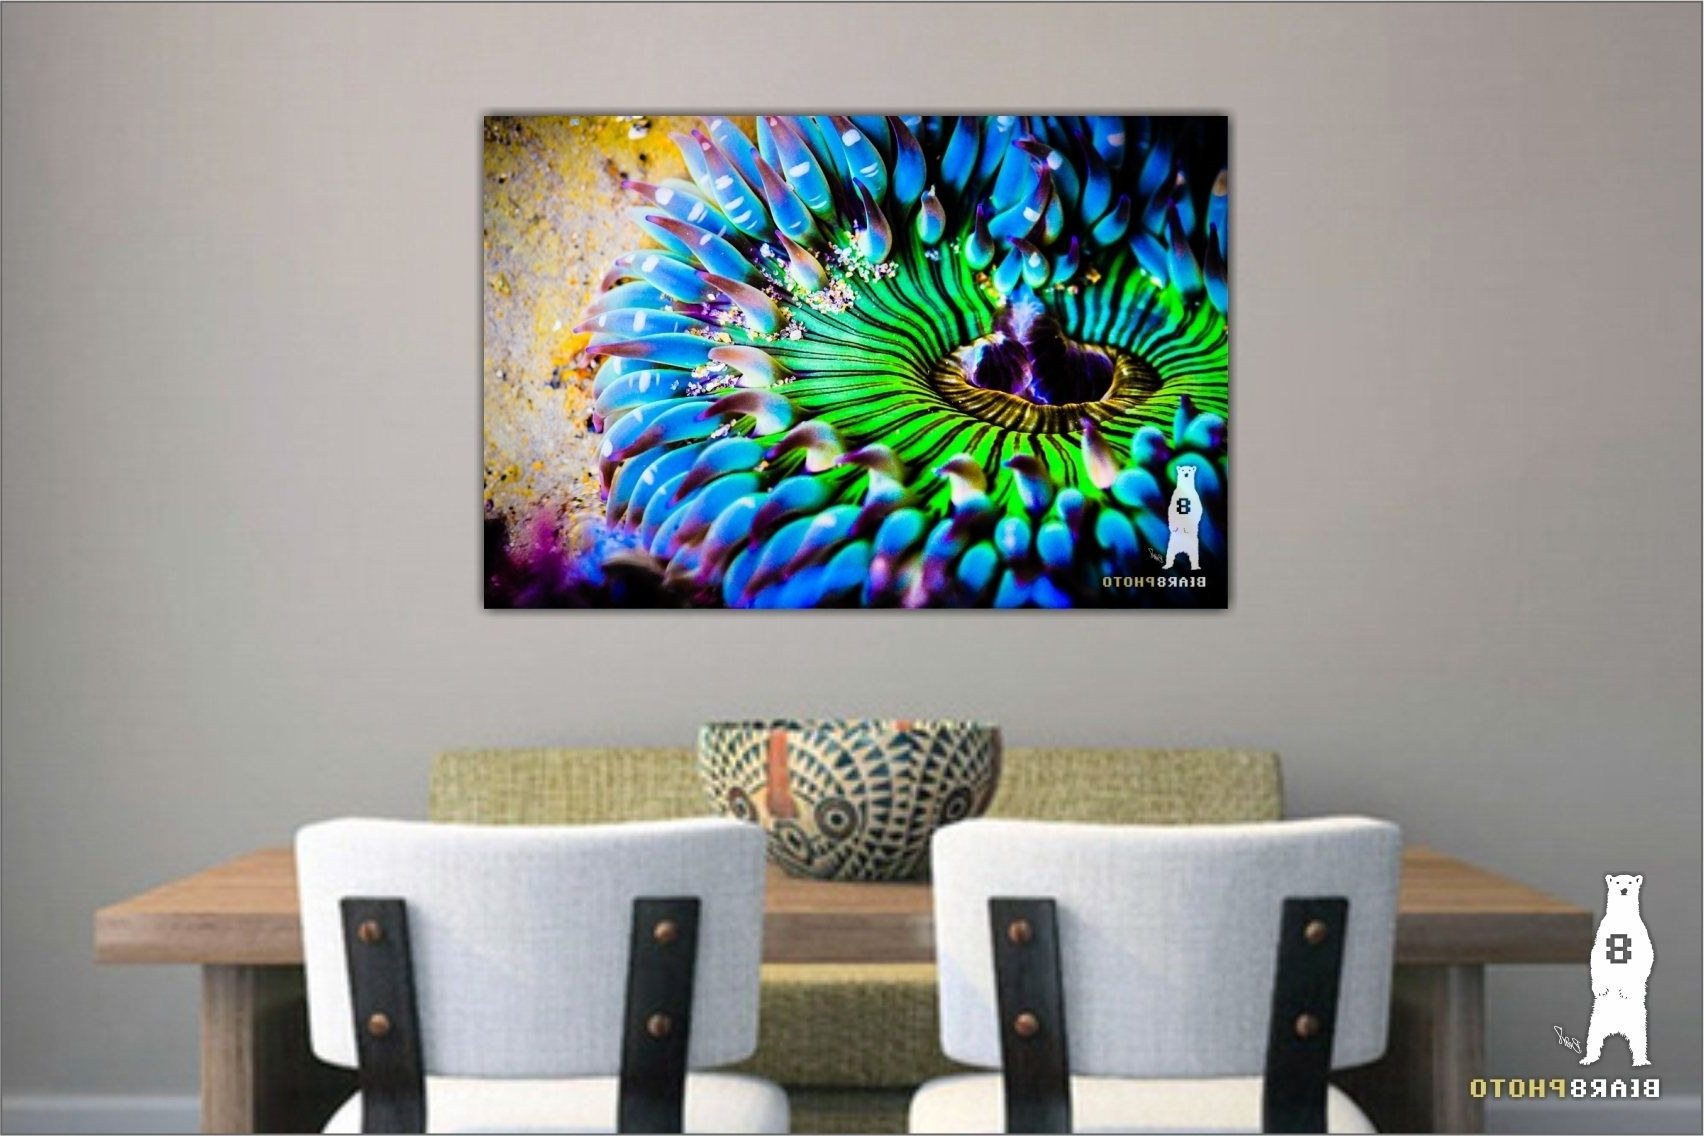 Colorful Wall Art, Bright Wall Art, Sea Life Prints, Bold And Pertaining To Current Colorful Wall Art (View 12 of 15)